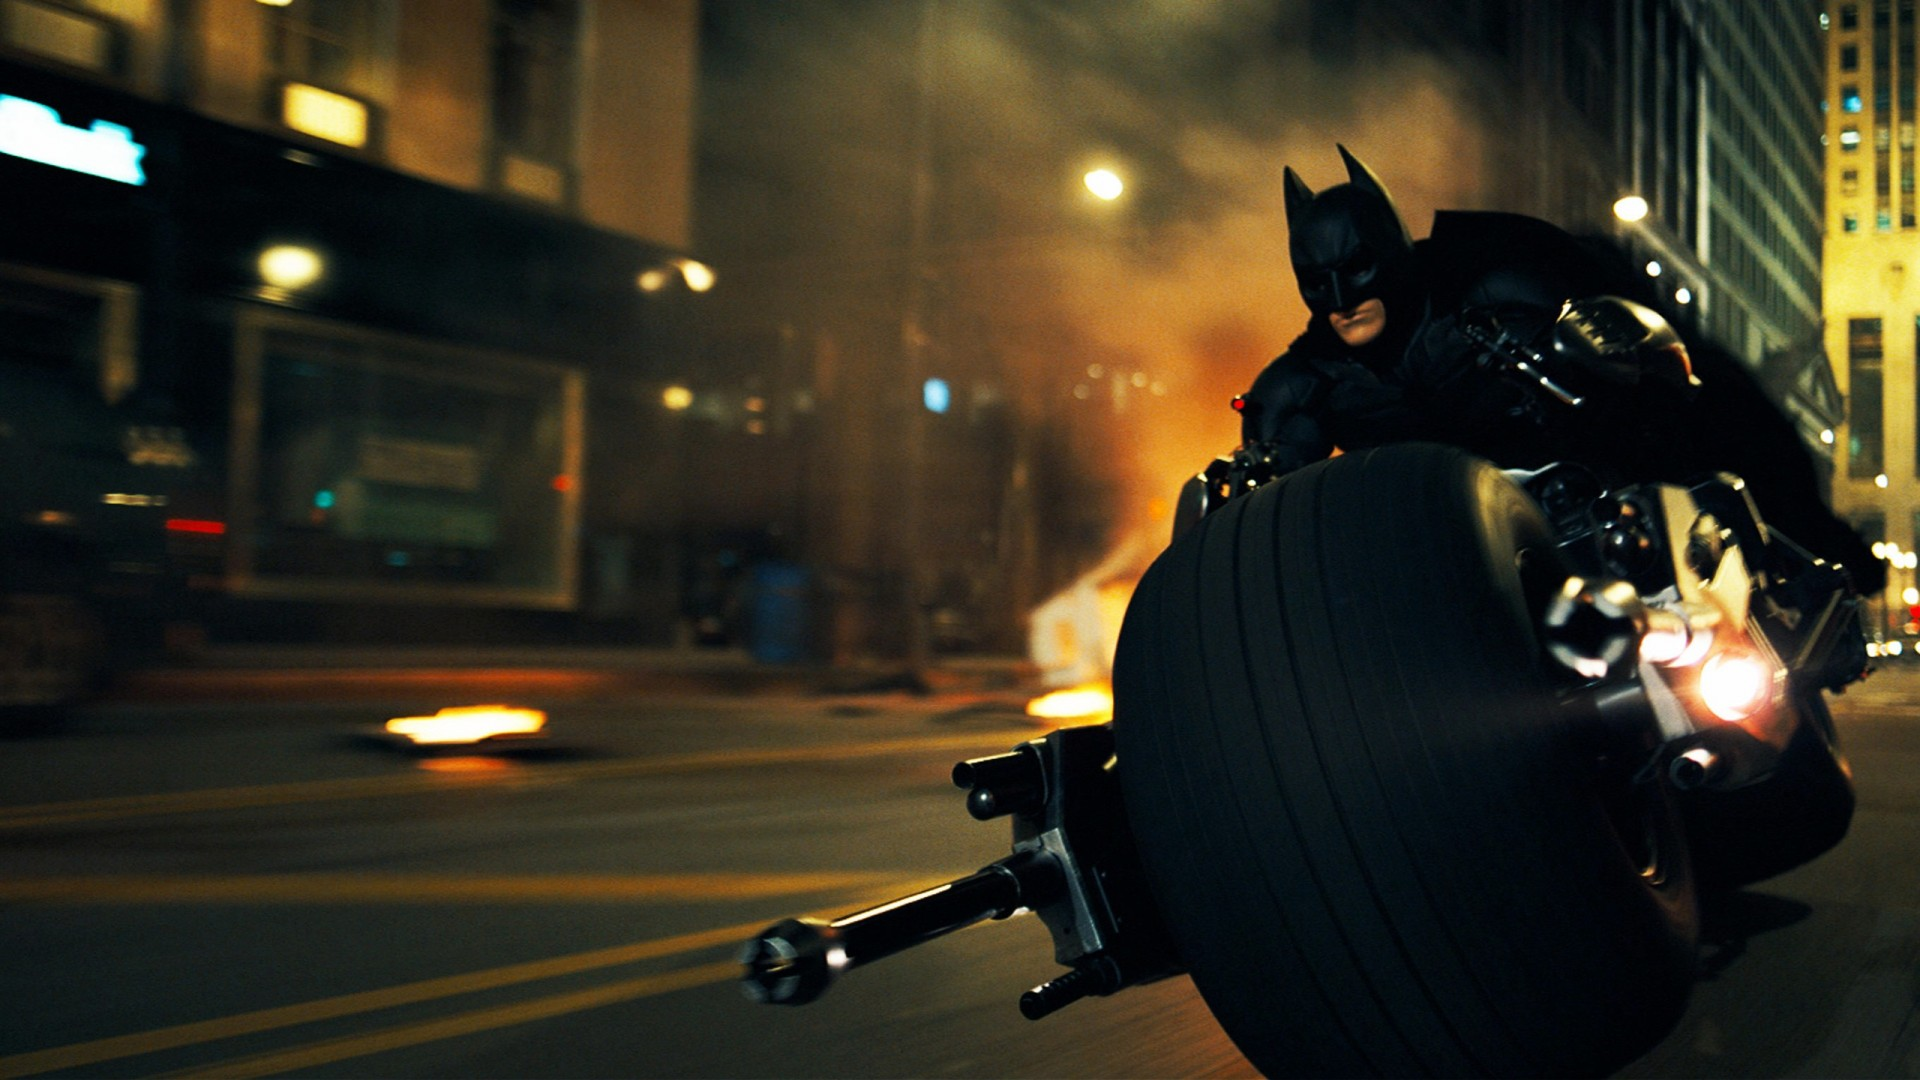 BATMAN-BIke-HD-wallpaper